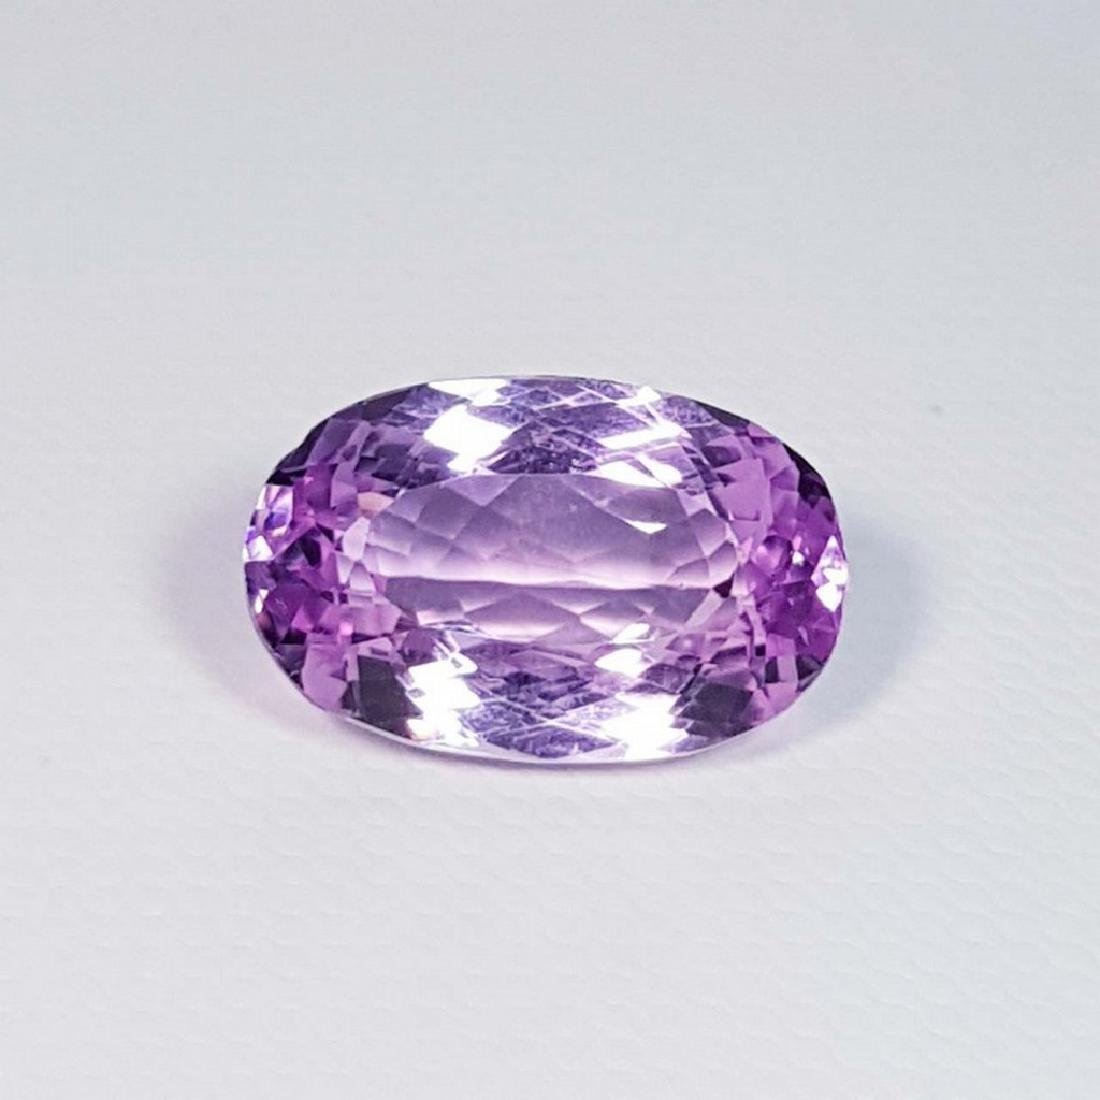 9.80 ct Top Grade Oval Cut Natural Pink or Purple